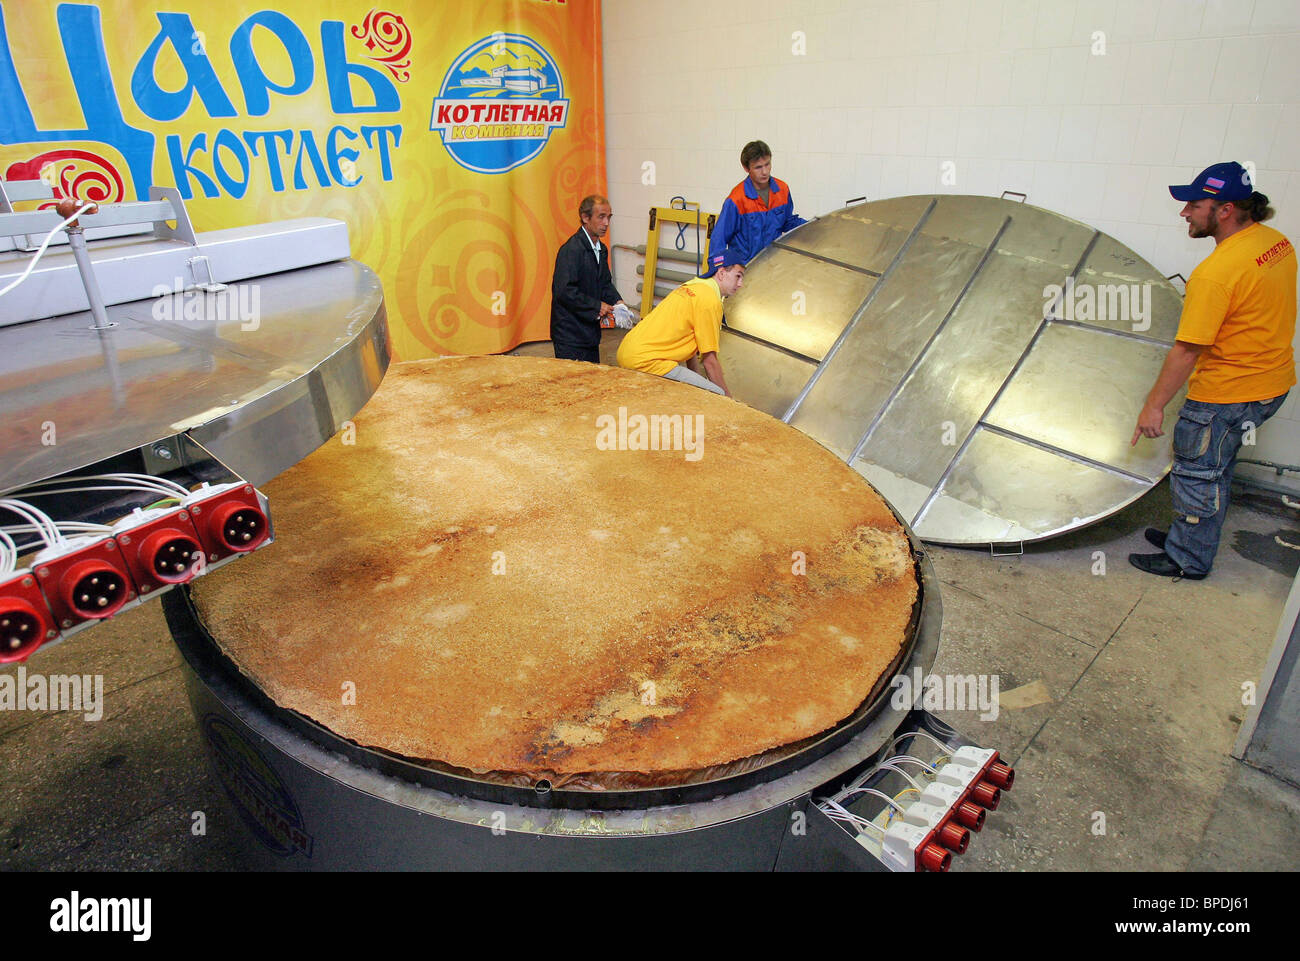 Hamburger patty weighing around 330 kg (726 lbs) made in Kostroma - Stock Image